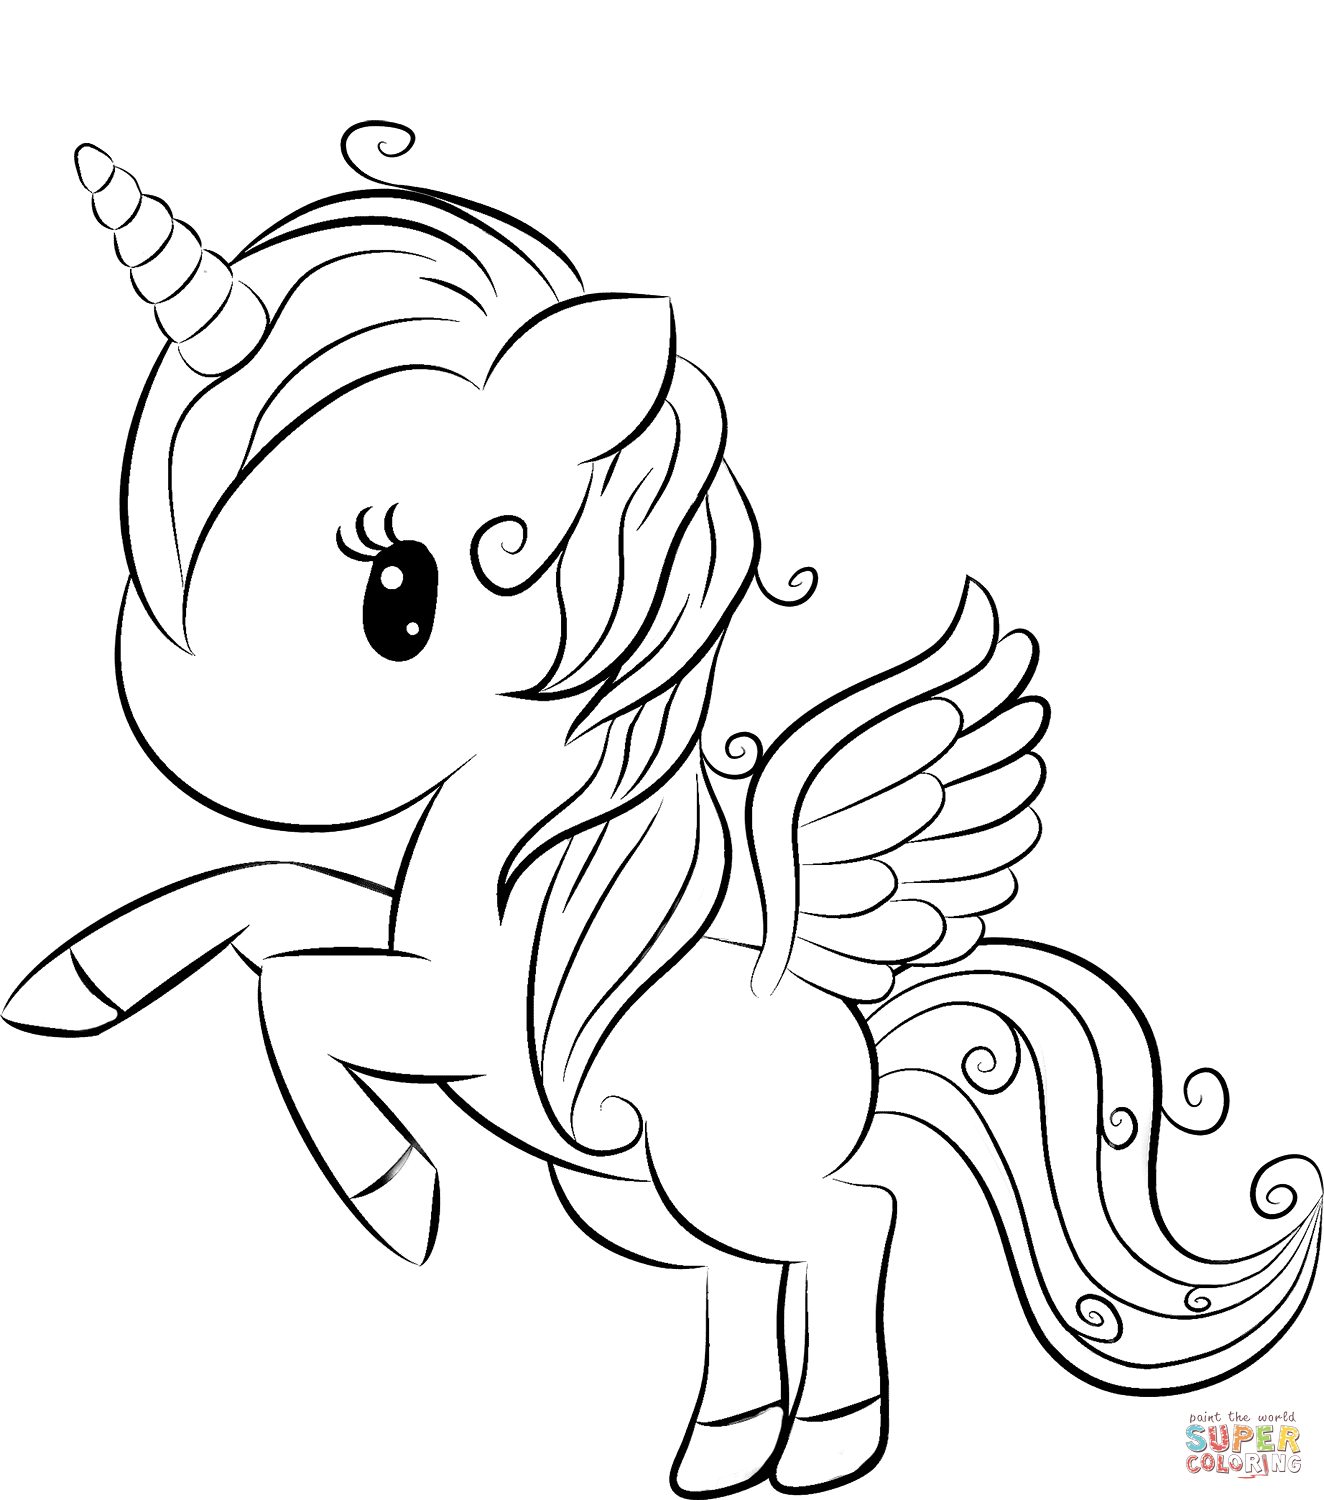 coloring for unicorn unicorn coloring pages to download and print for free for unicorn coloring